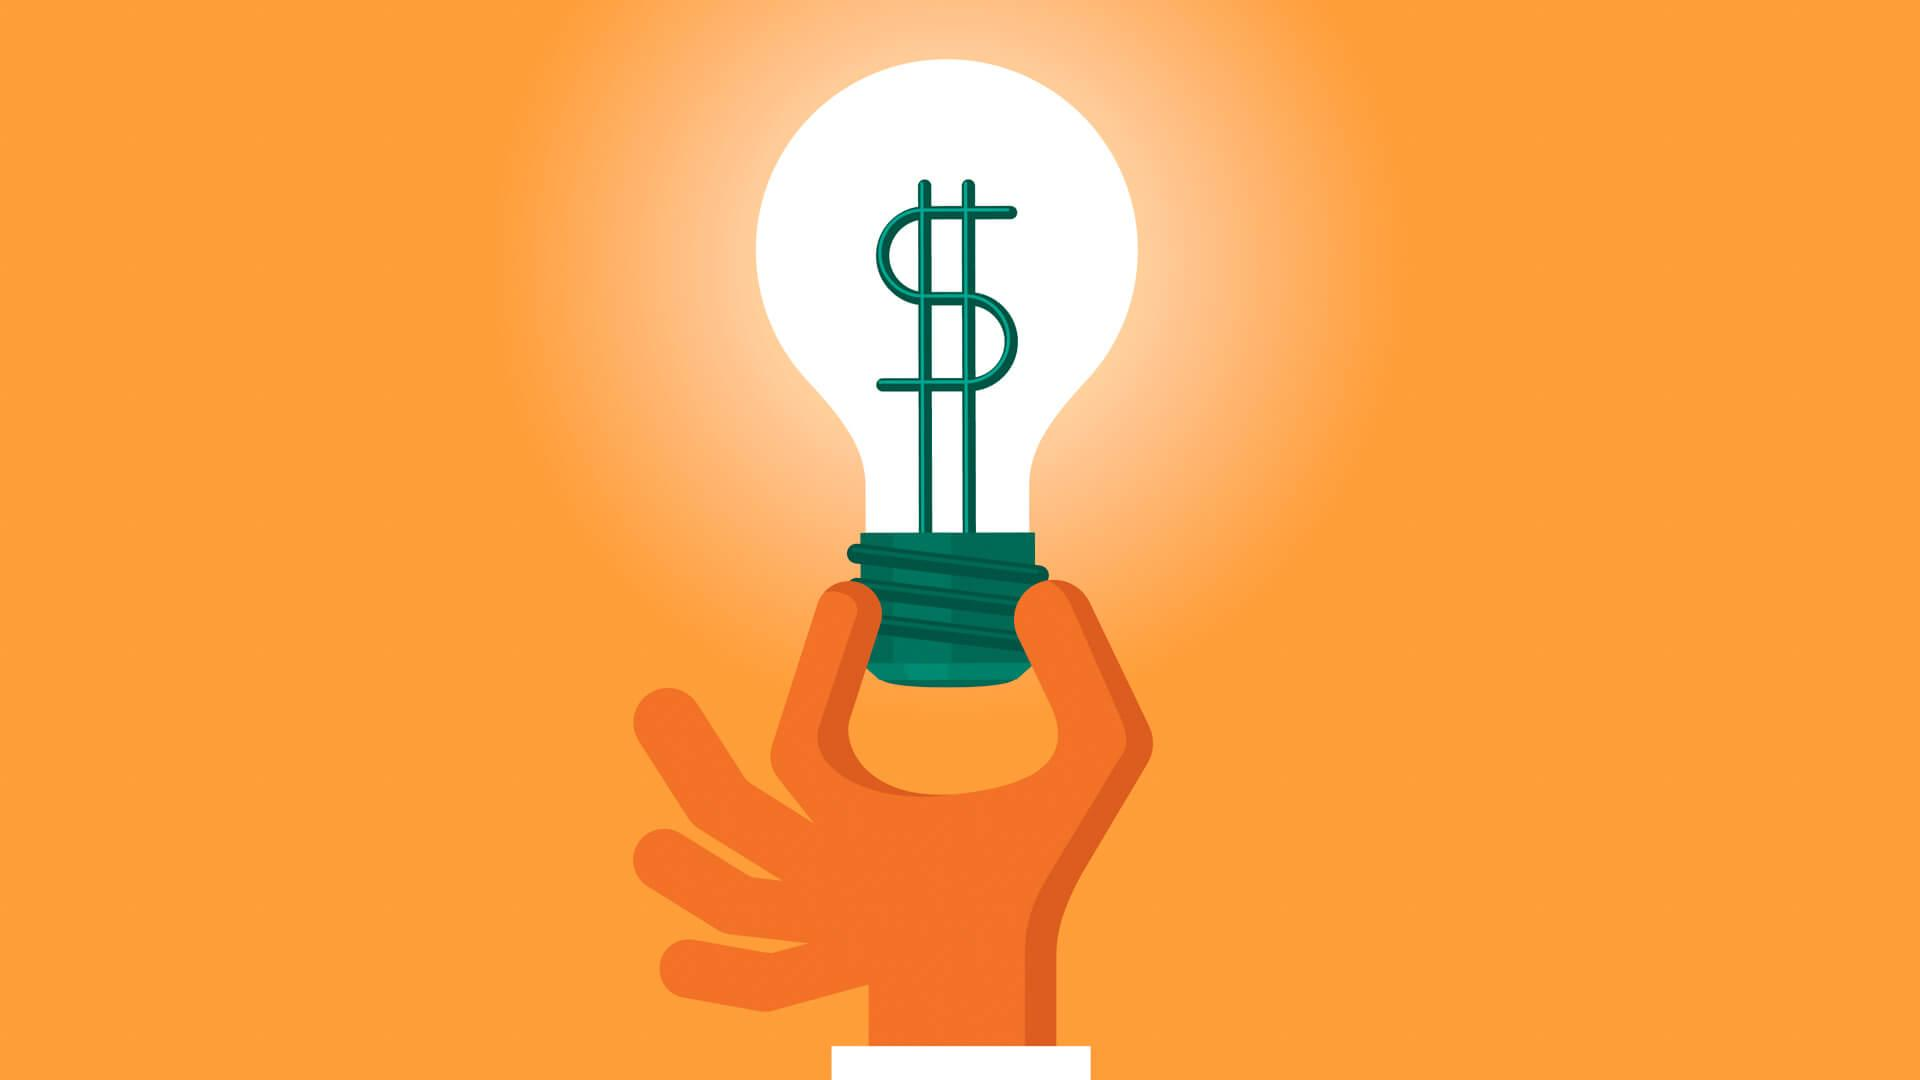 illustration of light bulb with dollar sign in center